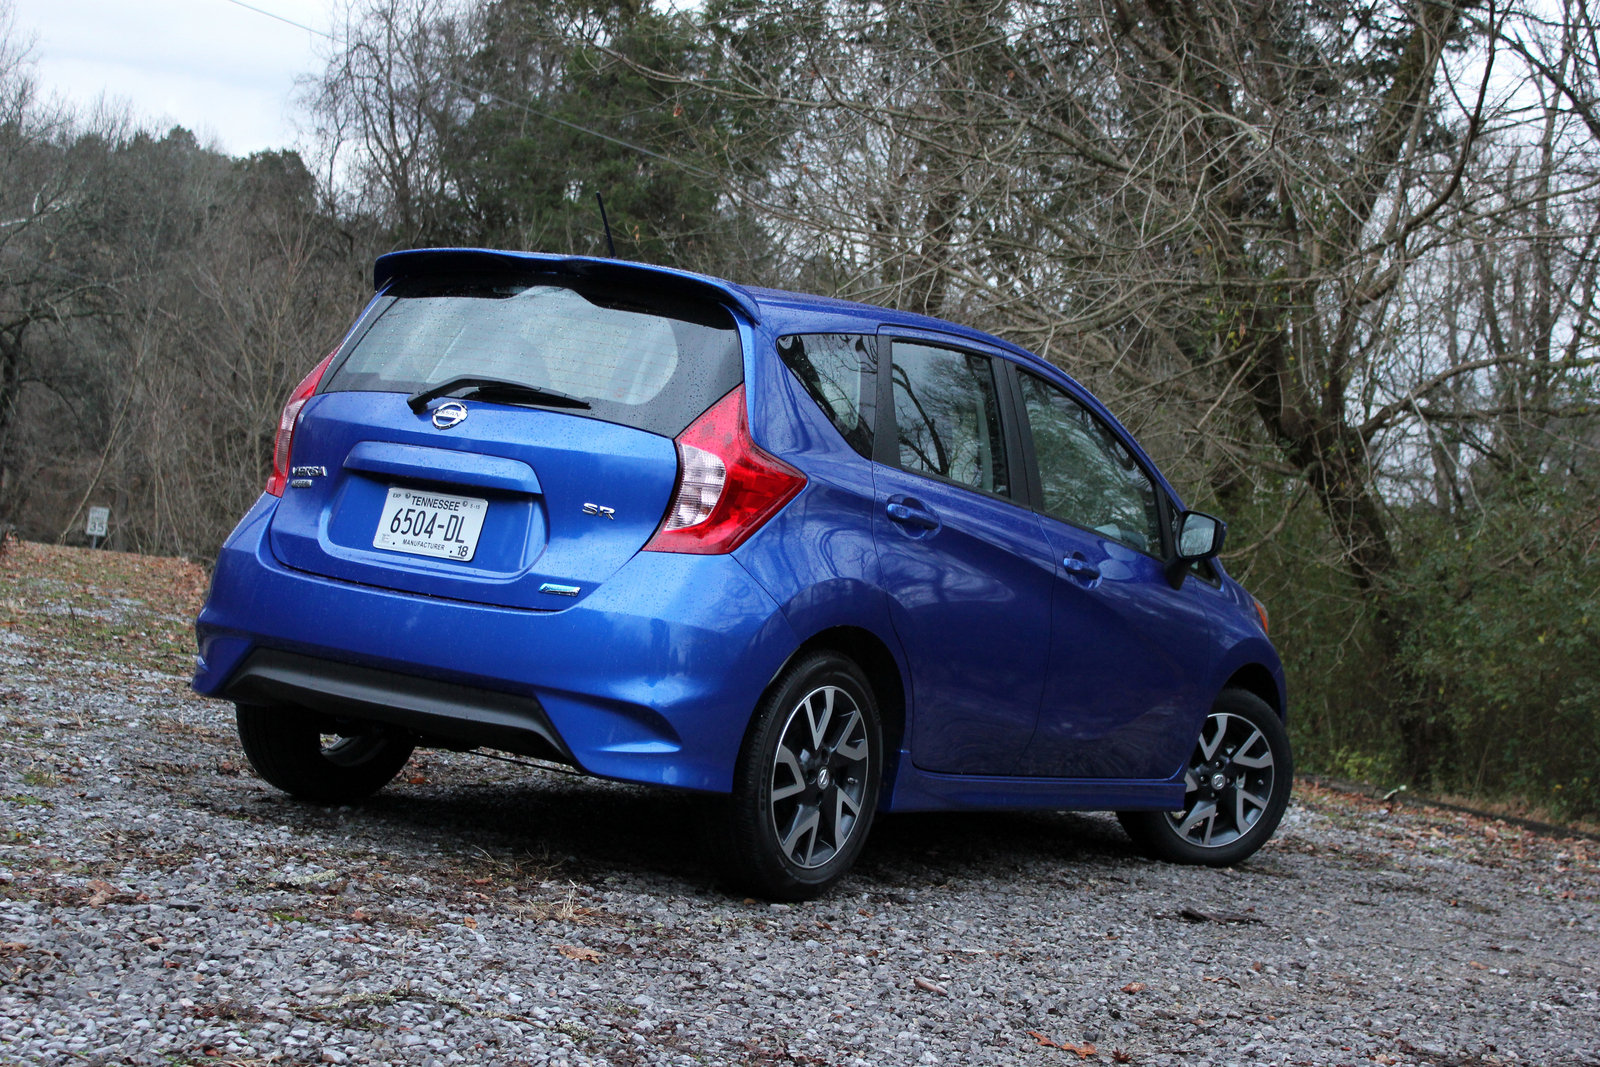 2015 nissan versa note sr driven picture 585805 car review top speed. Black Bedroom Furniture Sets. Home Design Ideas